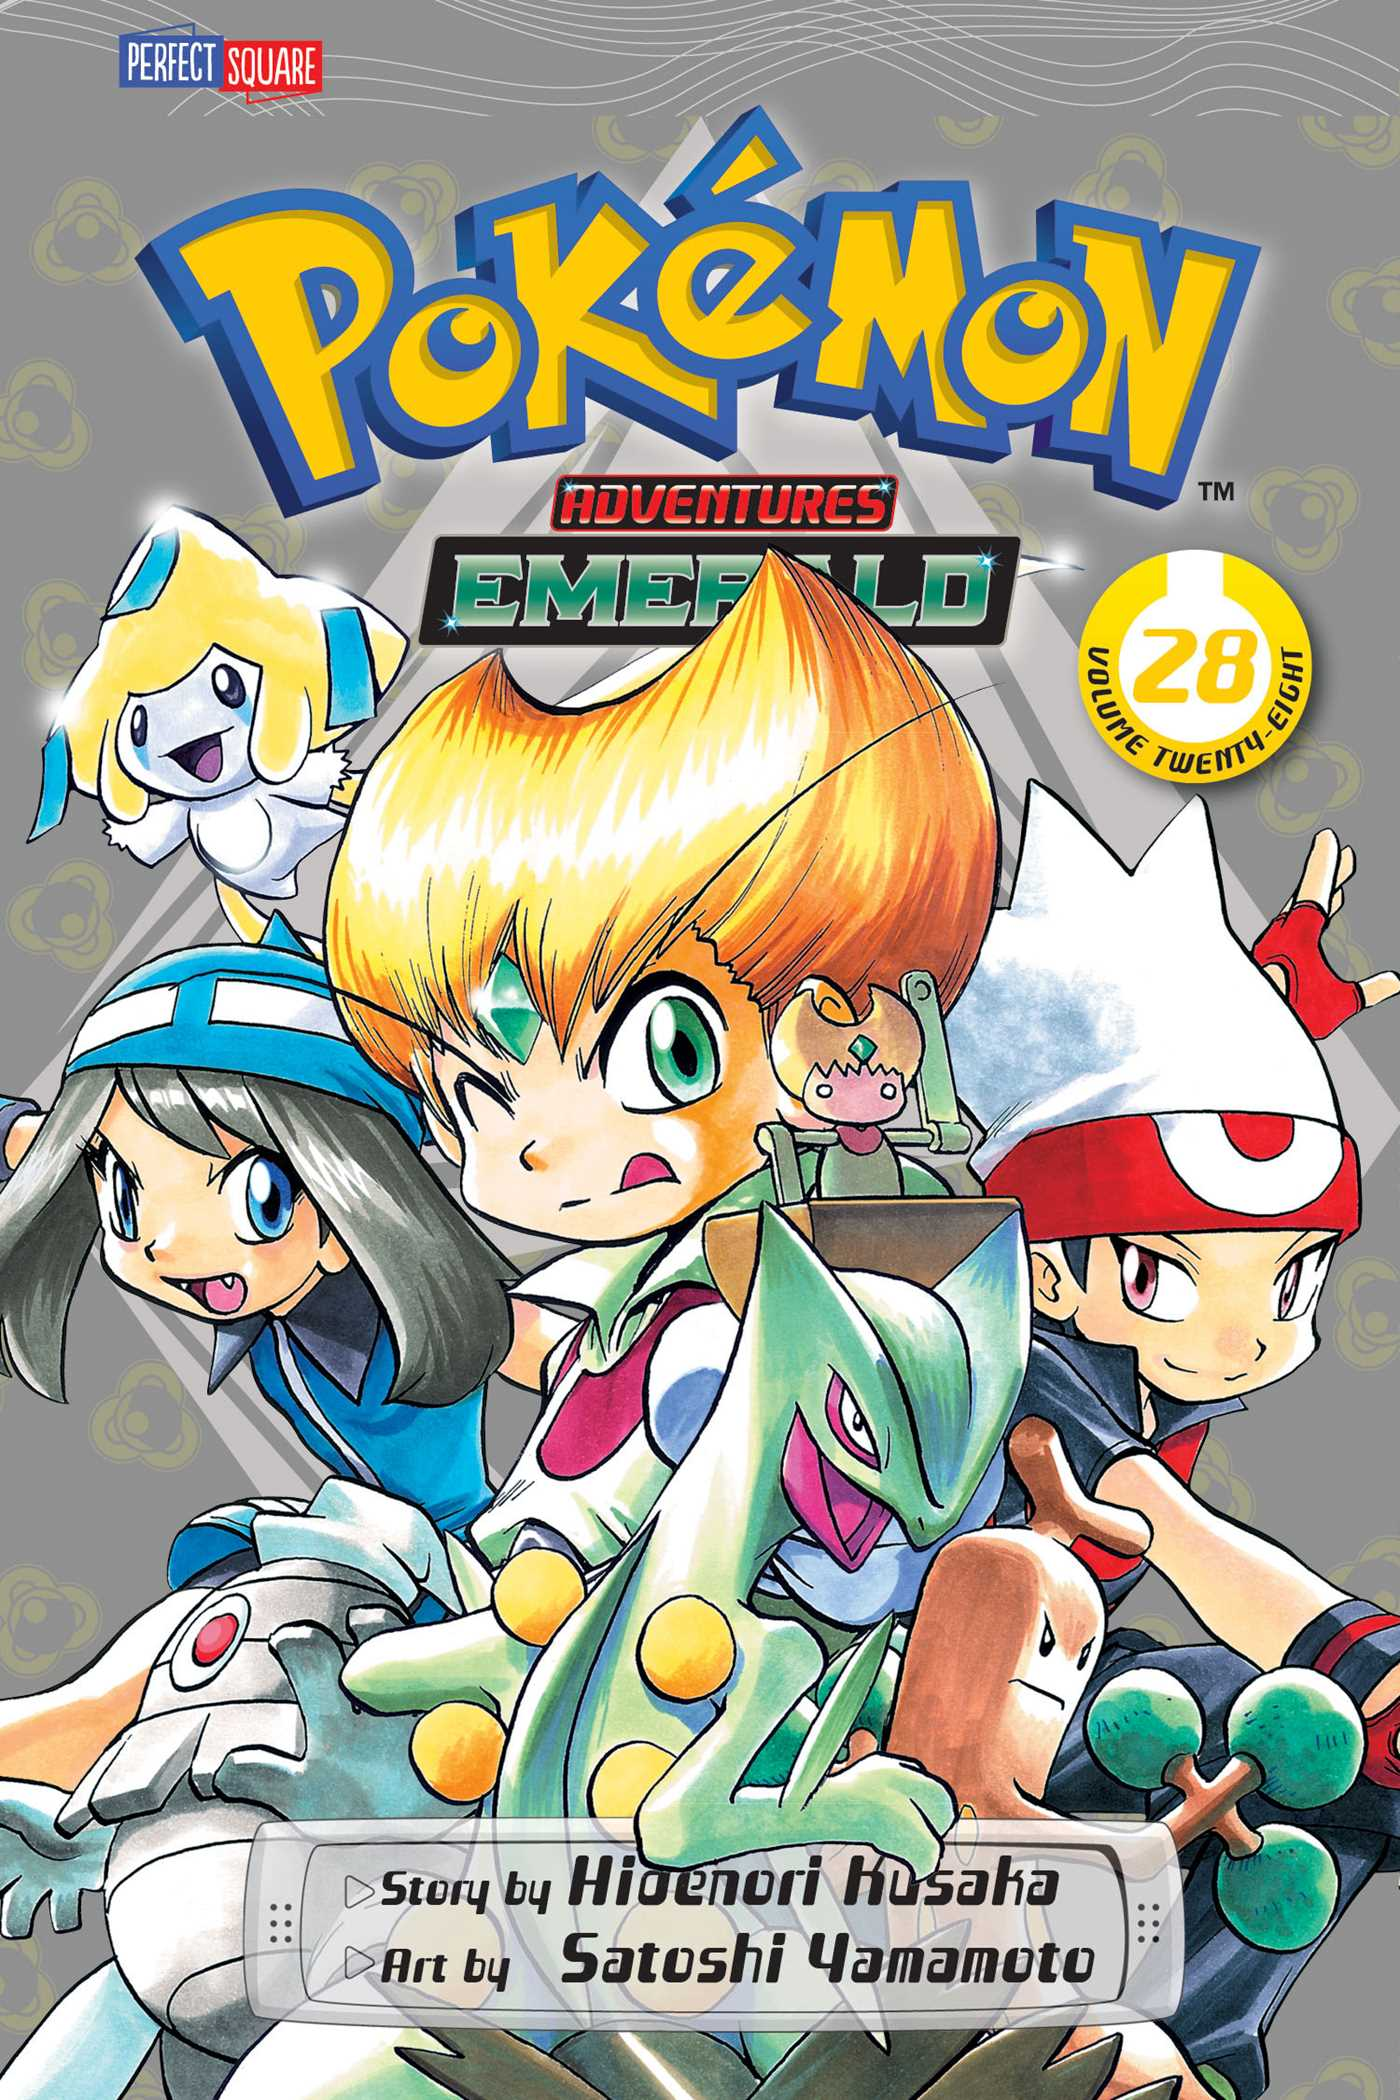 Pokemon adventures vol 28 9781421535623 hr